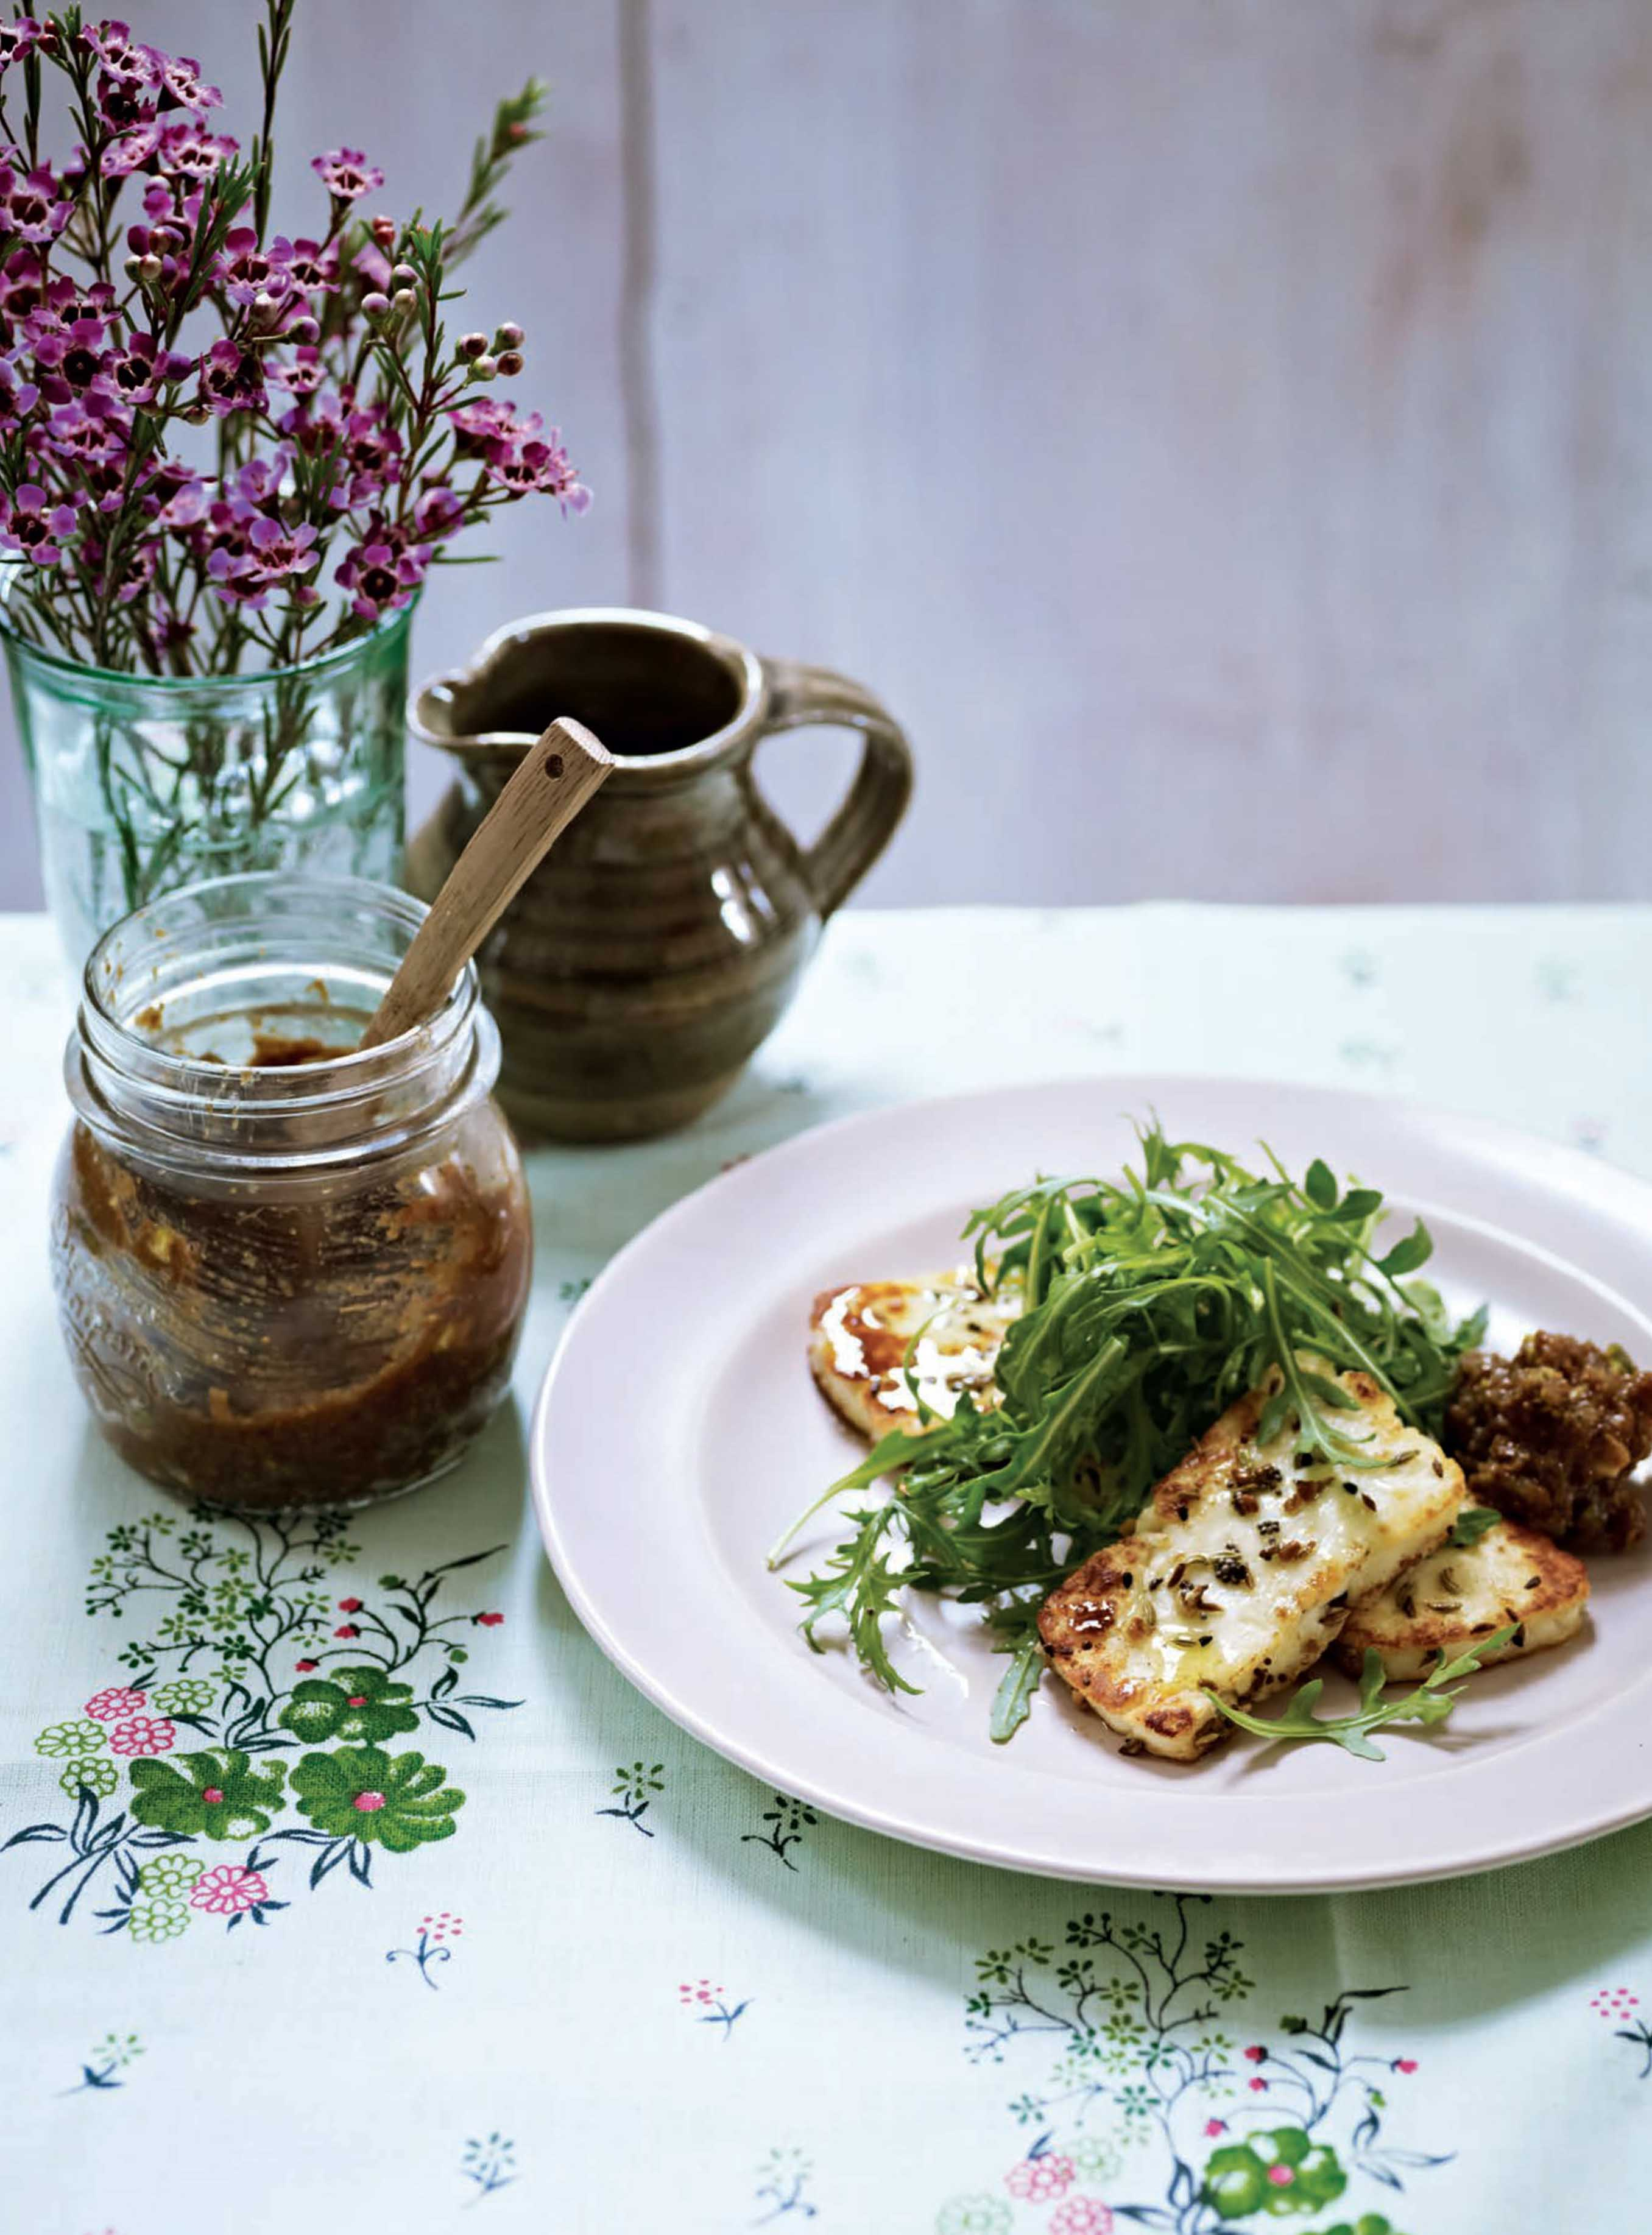 Spice-crusted halloumi with fig and pistachio chutney